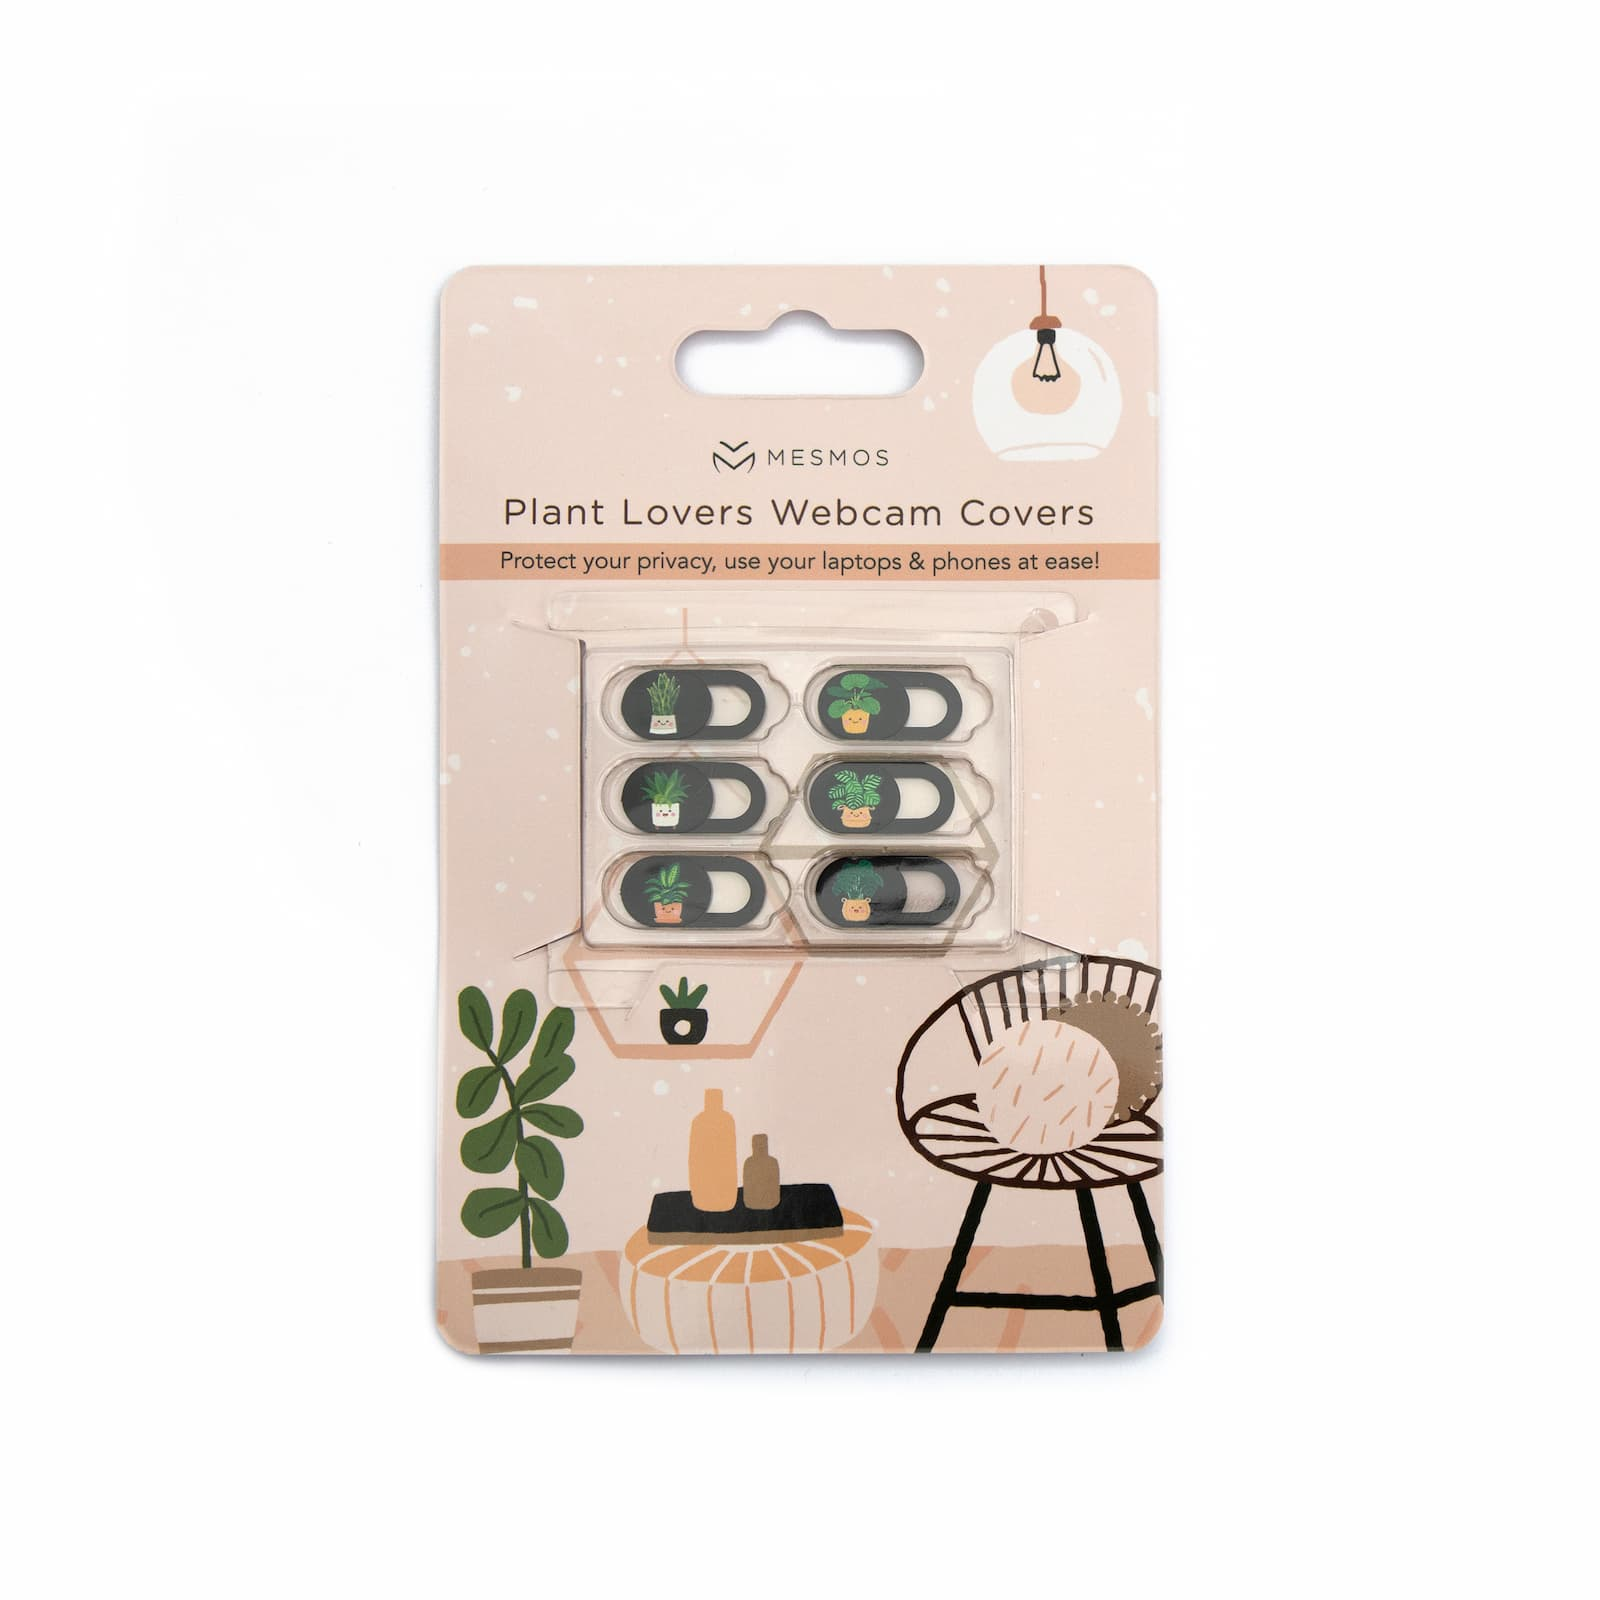 Plant Lovers Webcam Covers